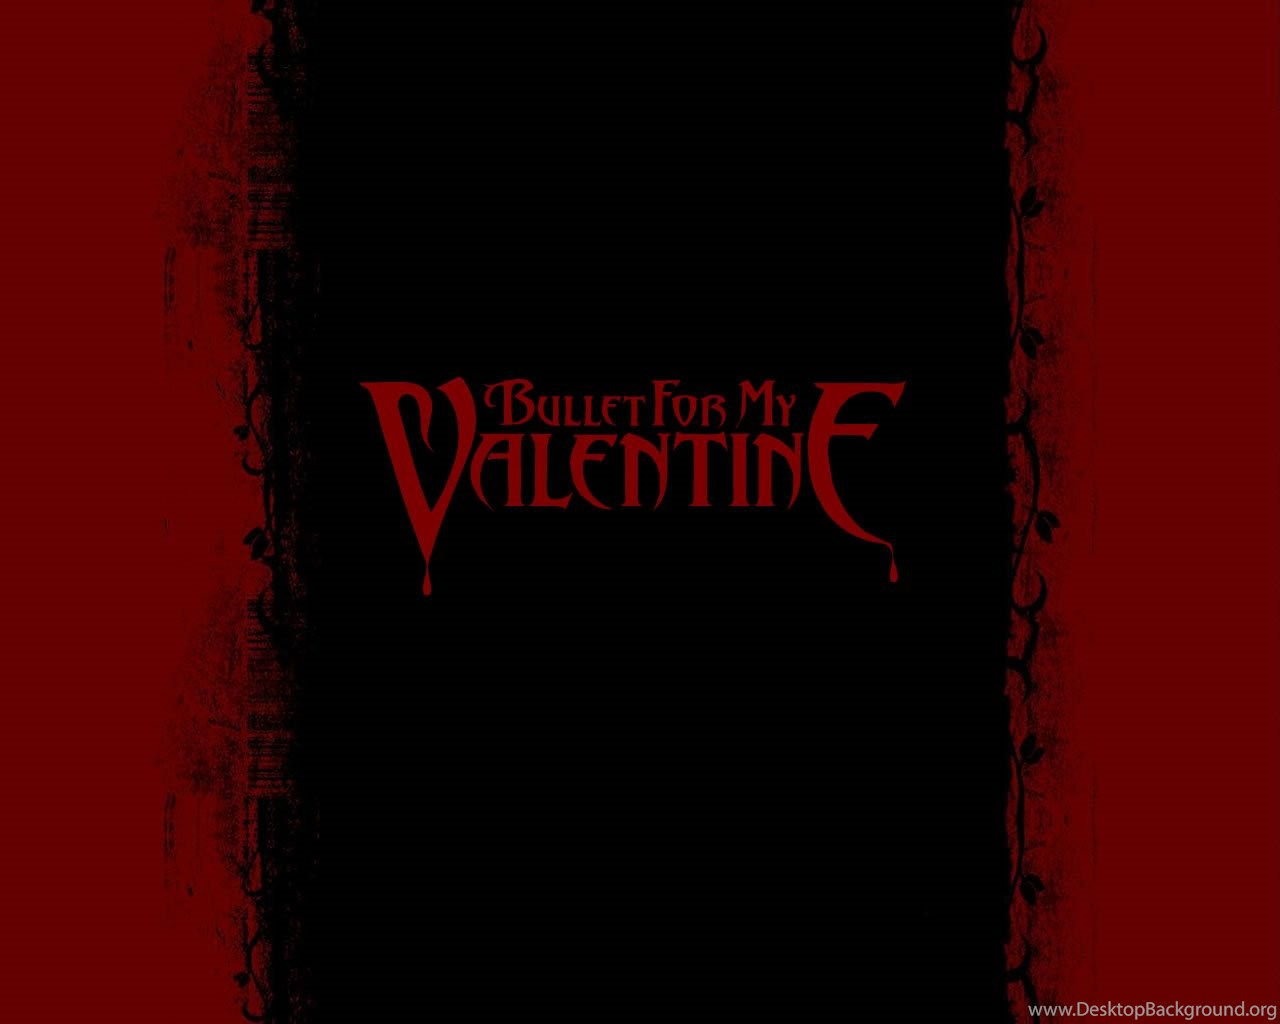 Bullet For My Valentine Wallpaper Picture Photo Image Desktop